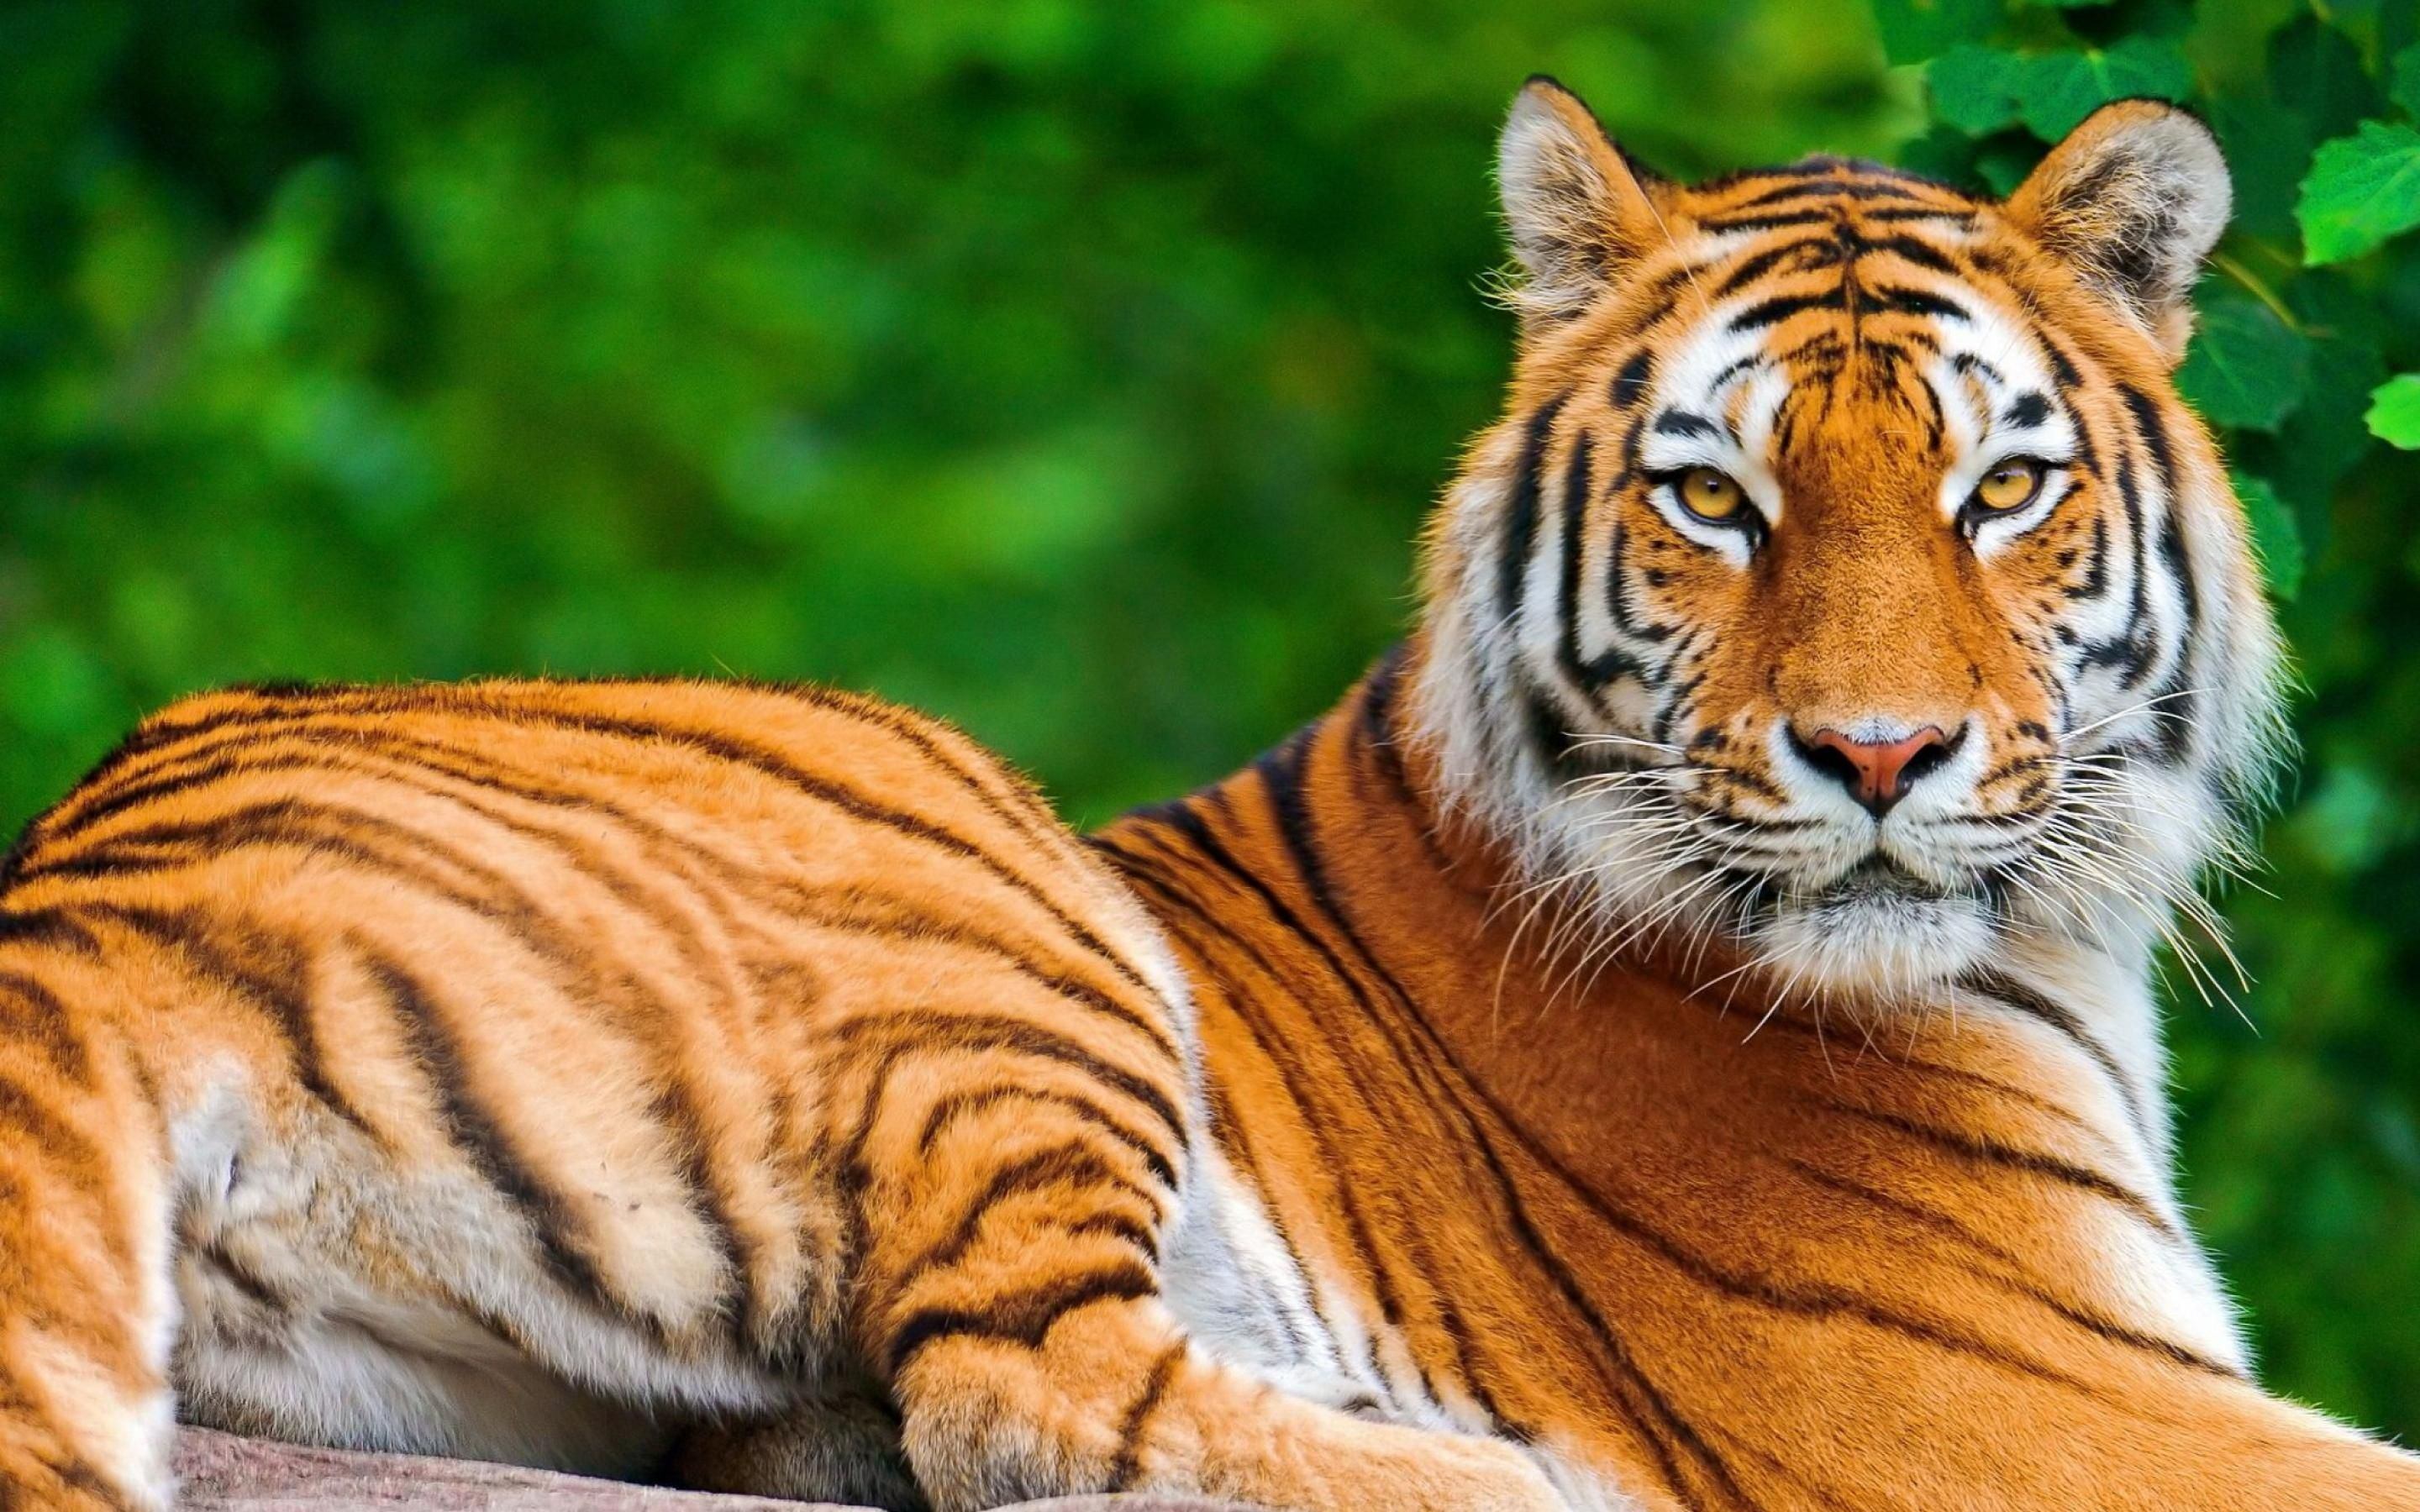 tiger hd wallpapers tiger pictures free download p hd | hd